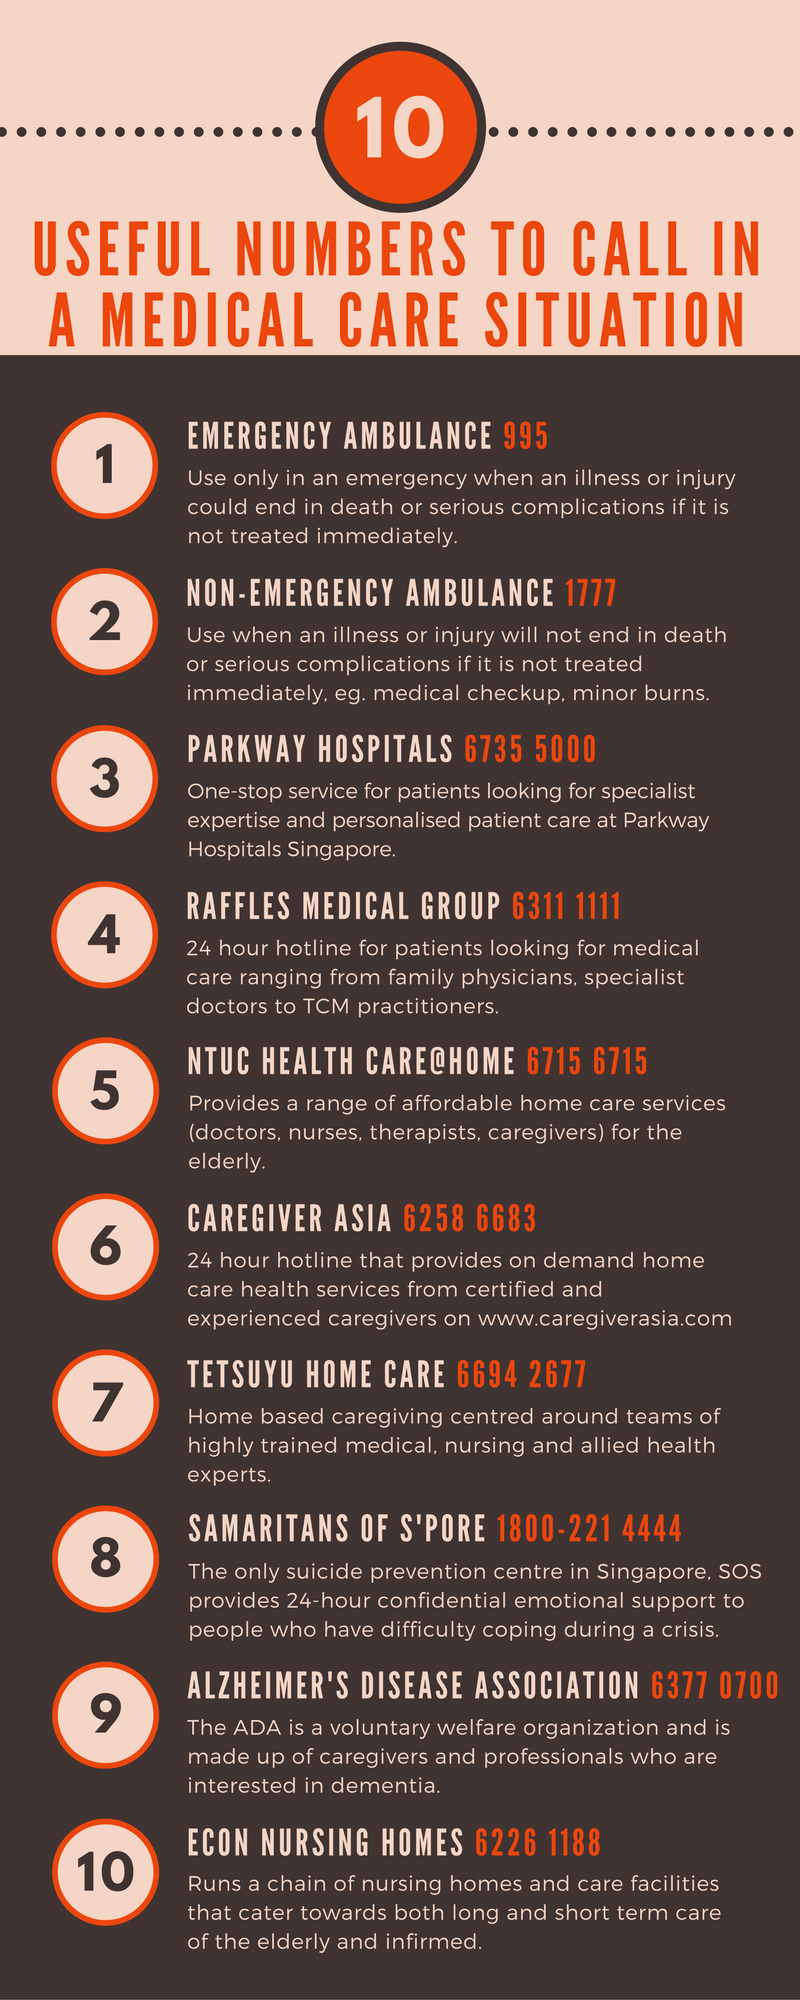 10 Useful Numbers to Call in a Medical Care Situation